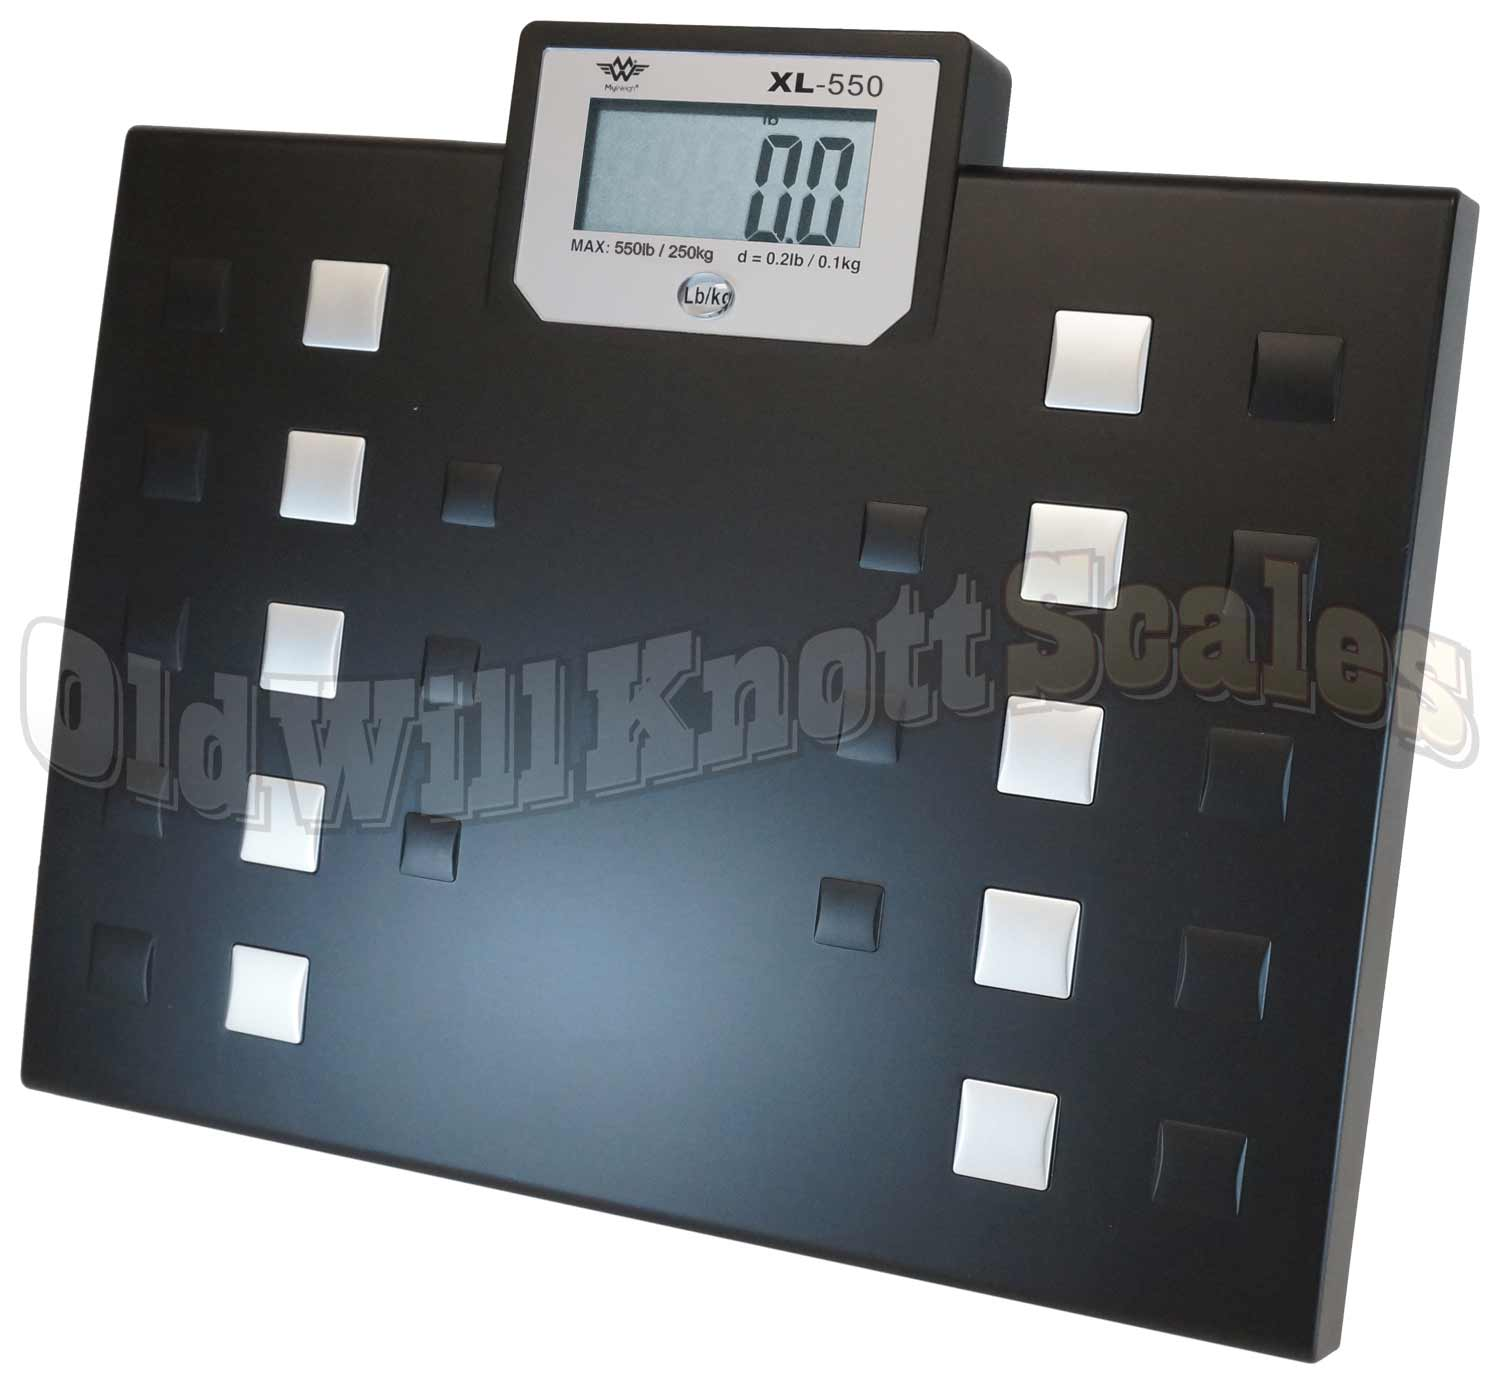 bathroom scales from old will. great prices, a+ service!